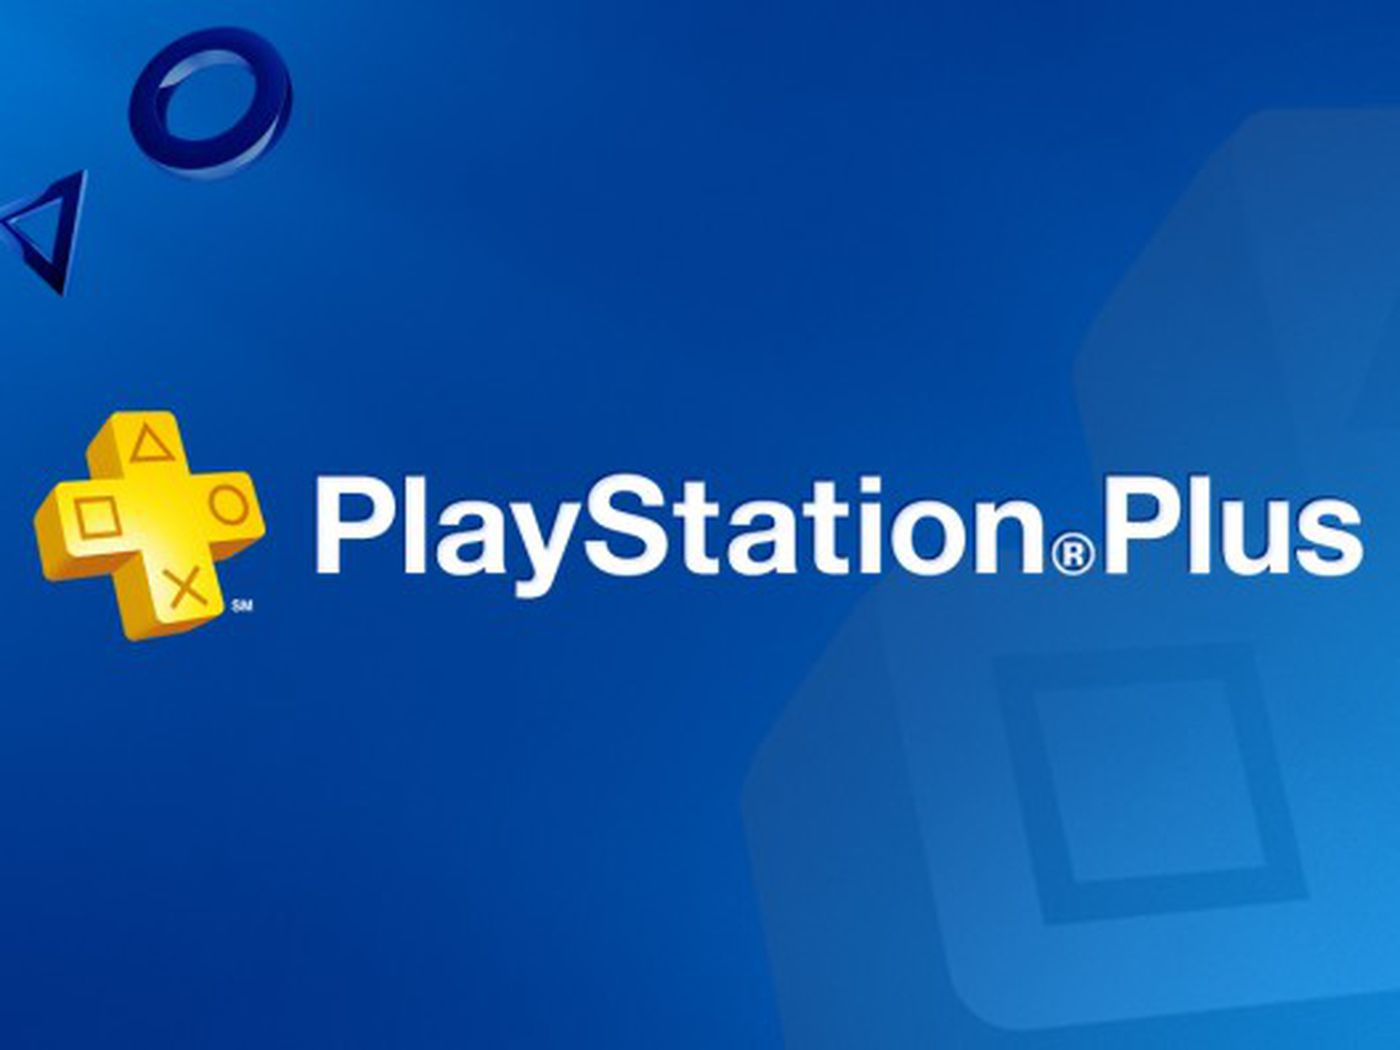 PS4 online multiplayer gaming requires PlayStation Plus